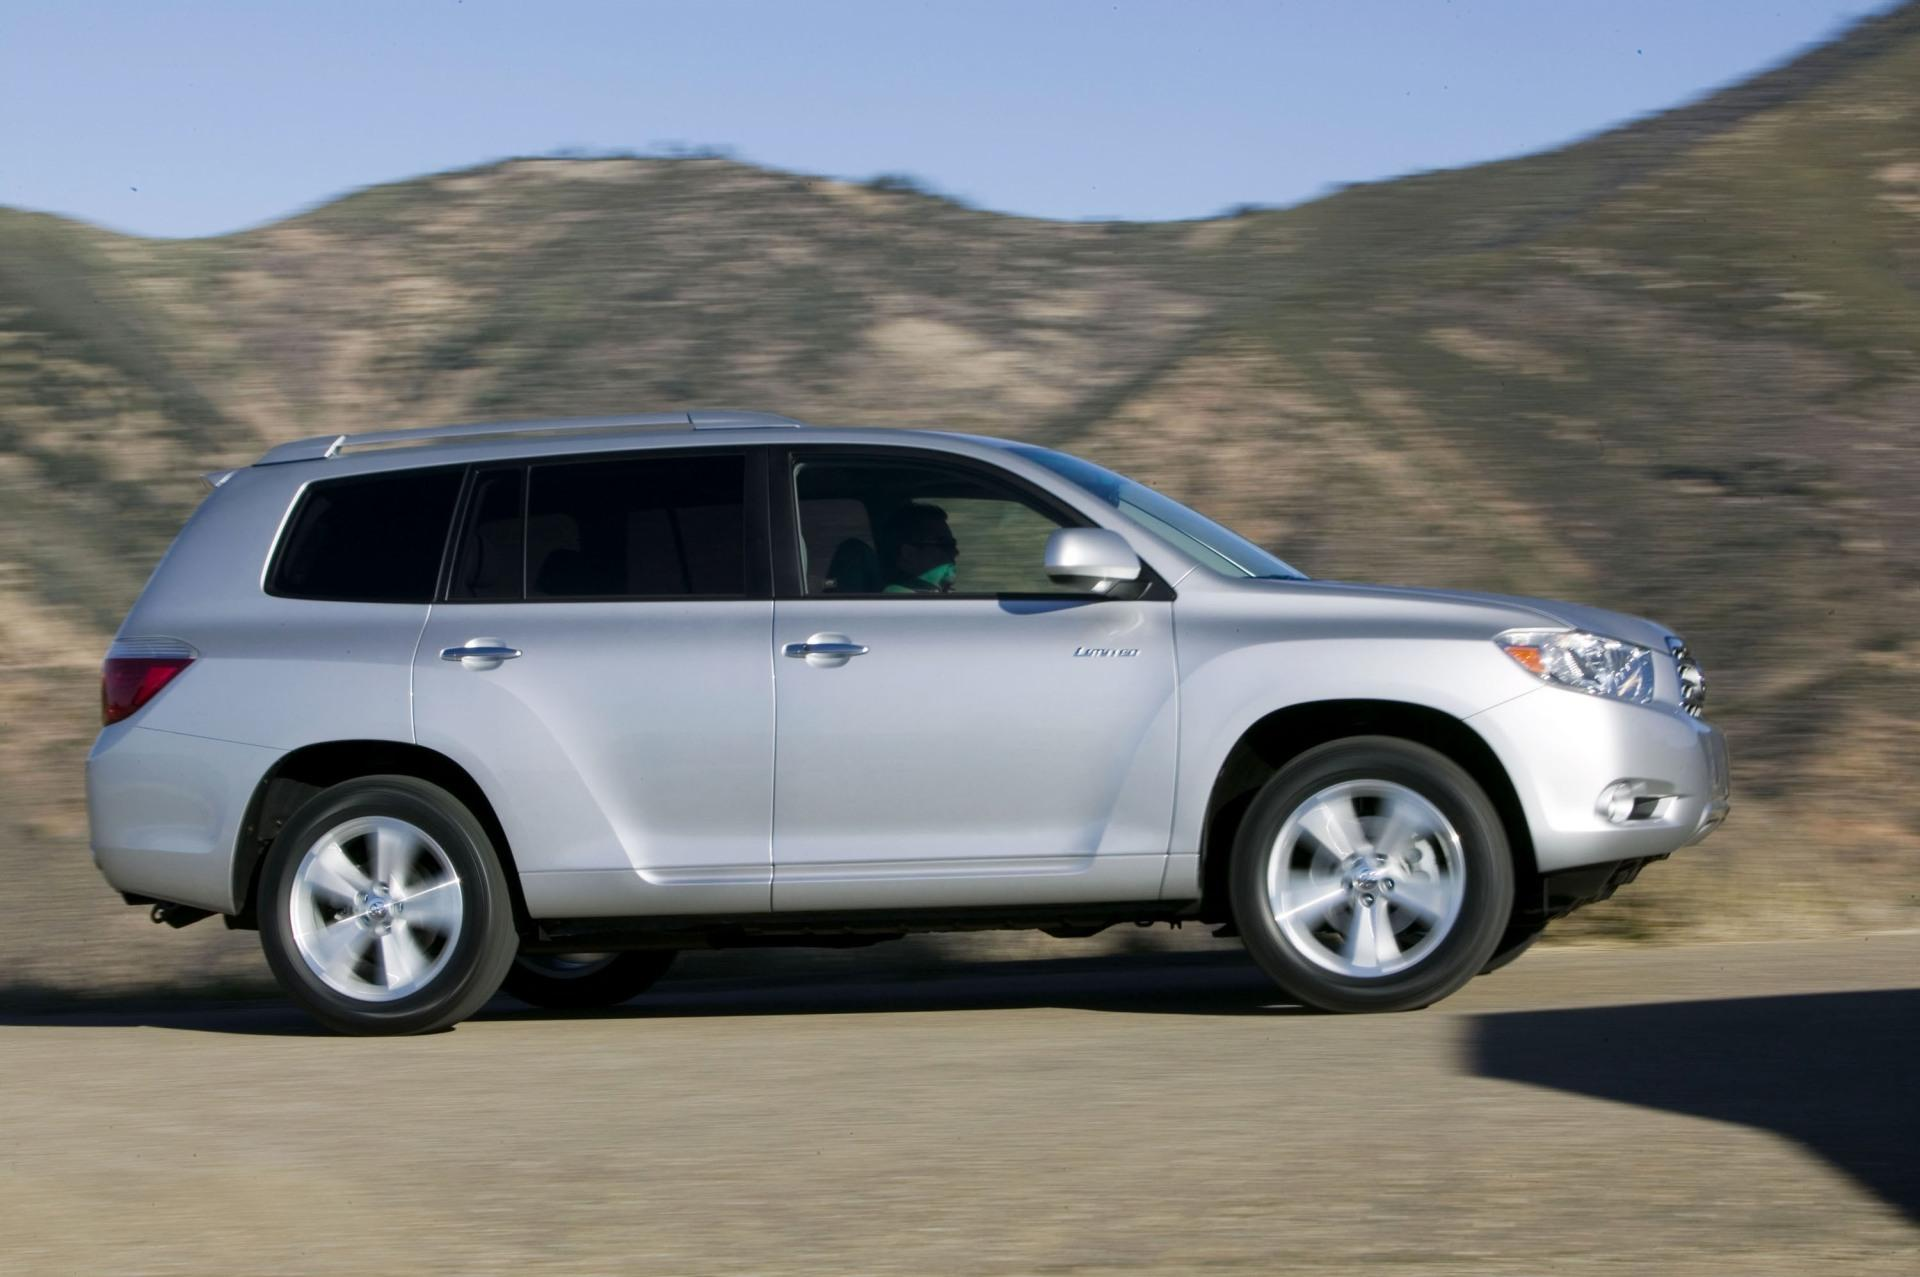 2010 toyota highlander technical specifications and data engine dimensions and mechanical. Black Bedroom Furniture Sets. Home Design Ideas